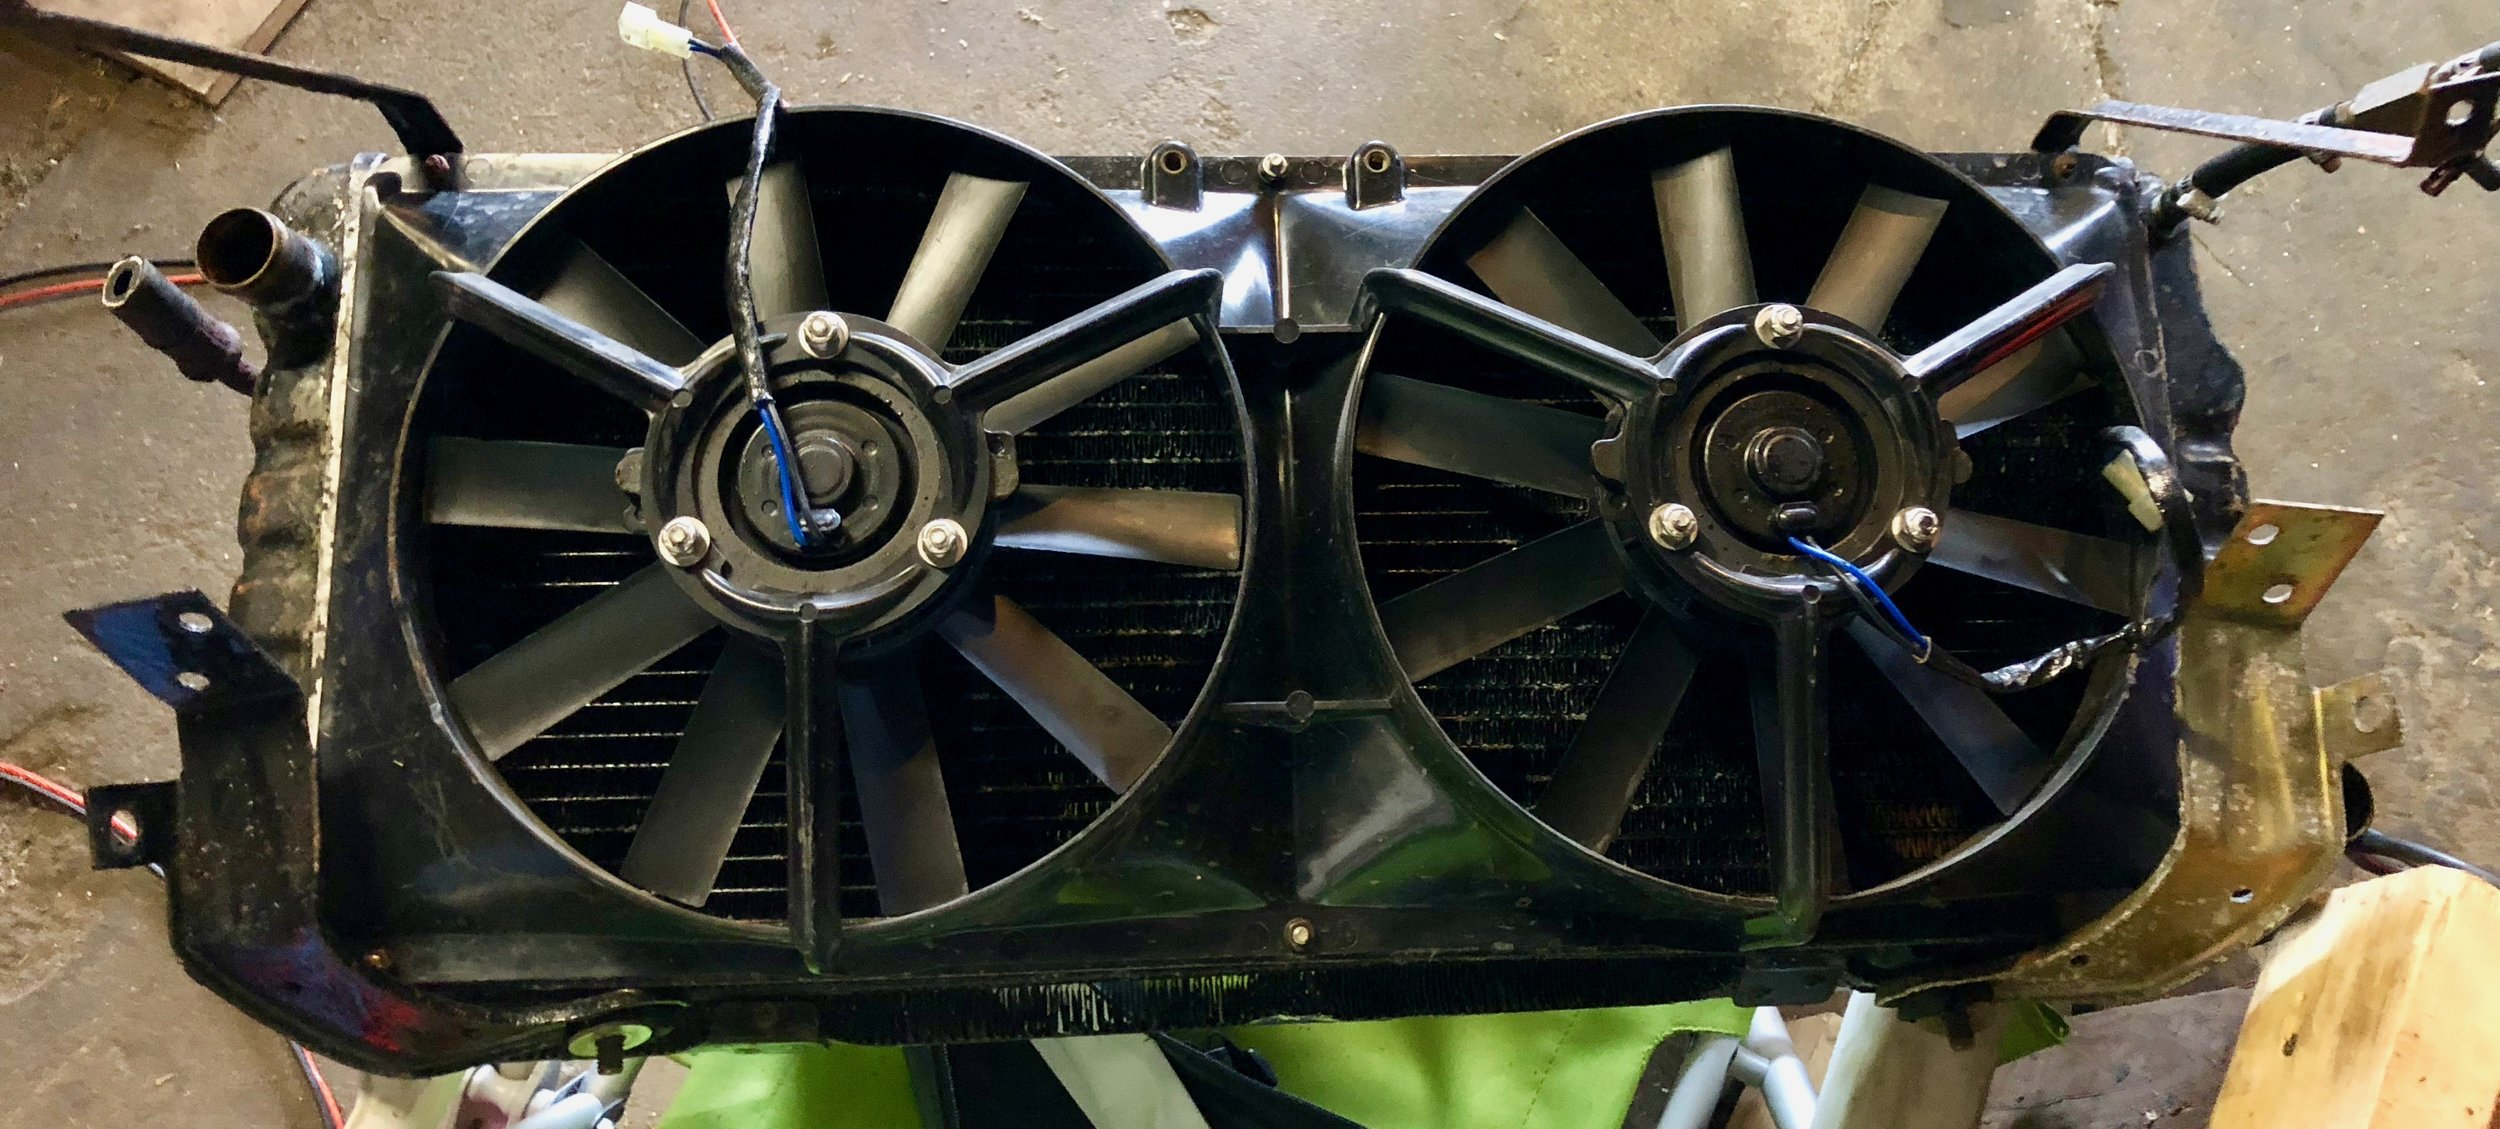 The radiator, condenser and fans removed from the car. The angled braces are still attached to the top of the radiator.